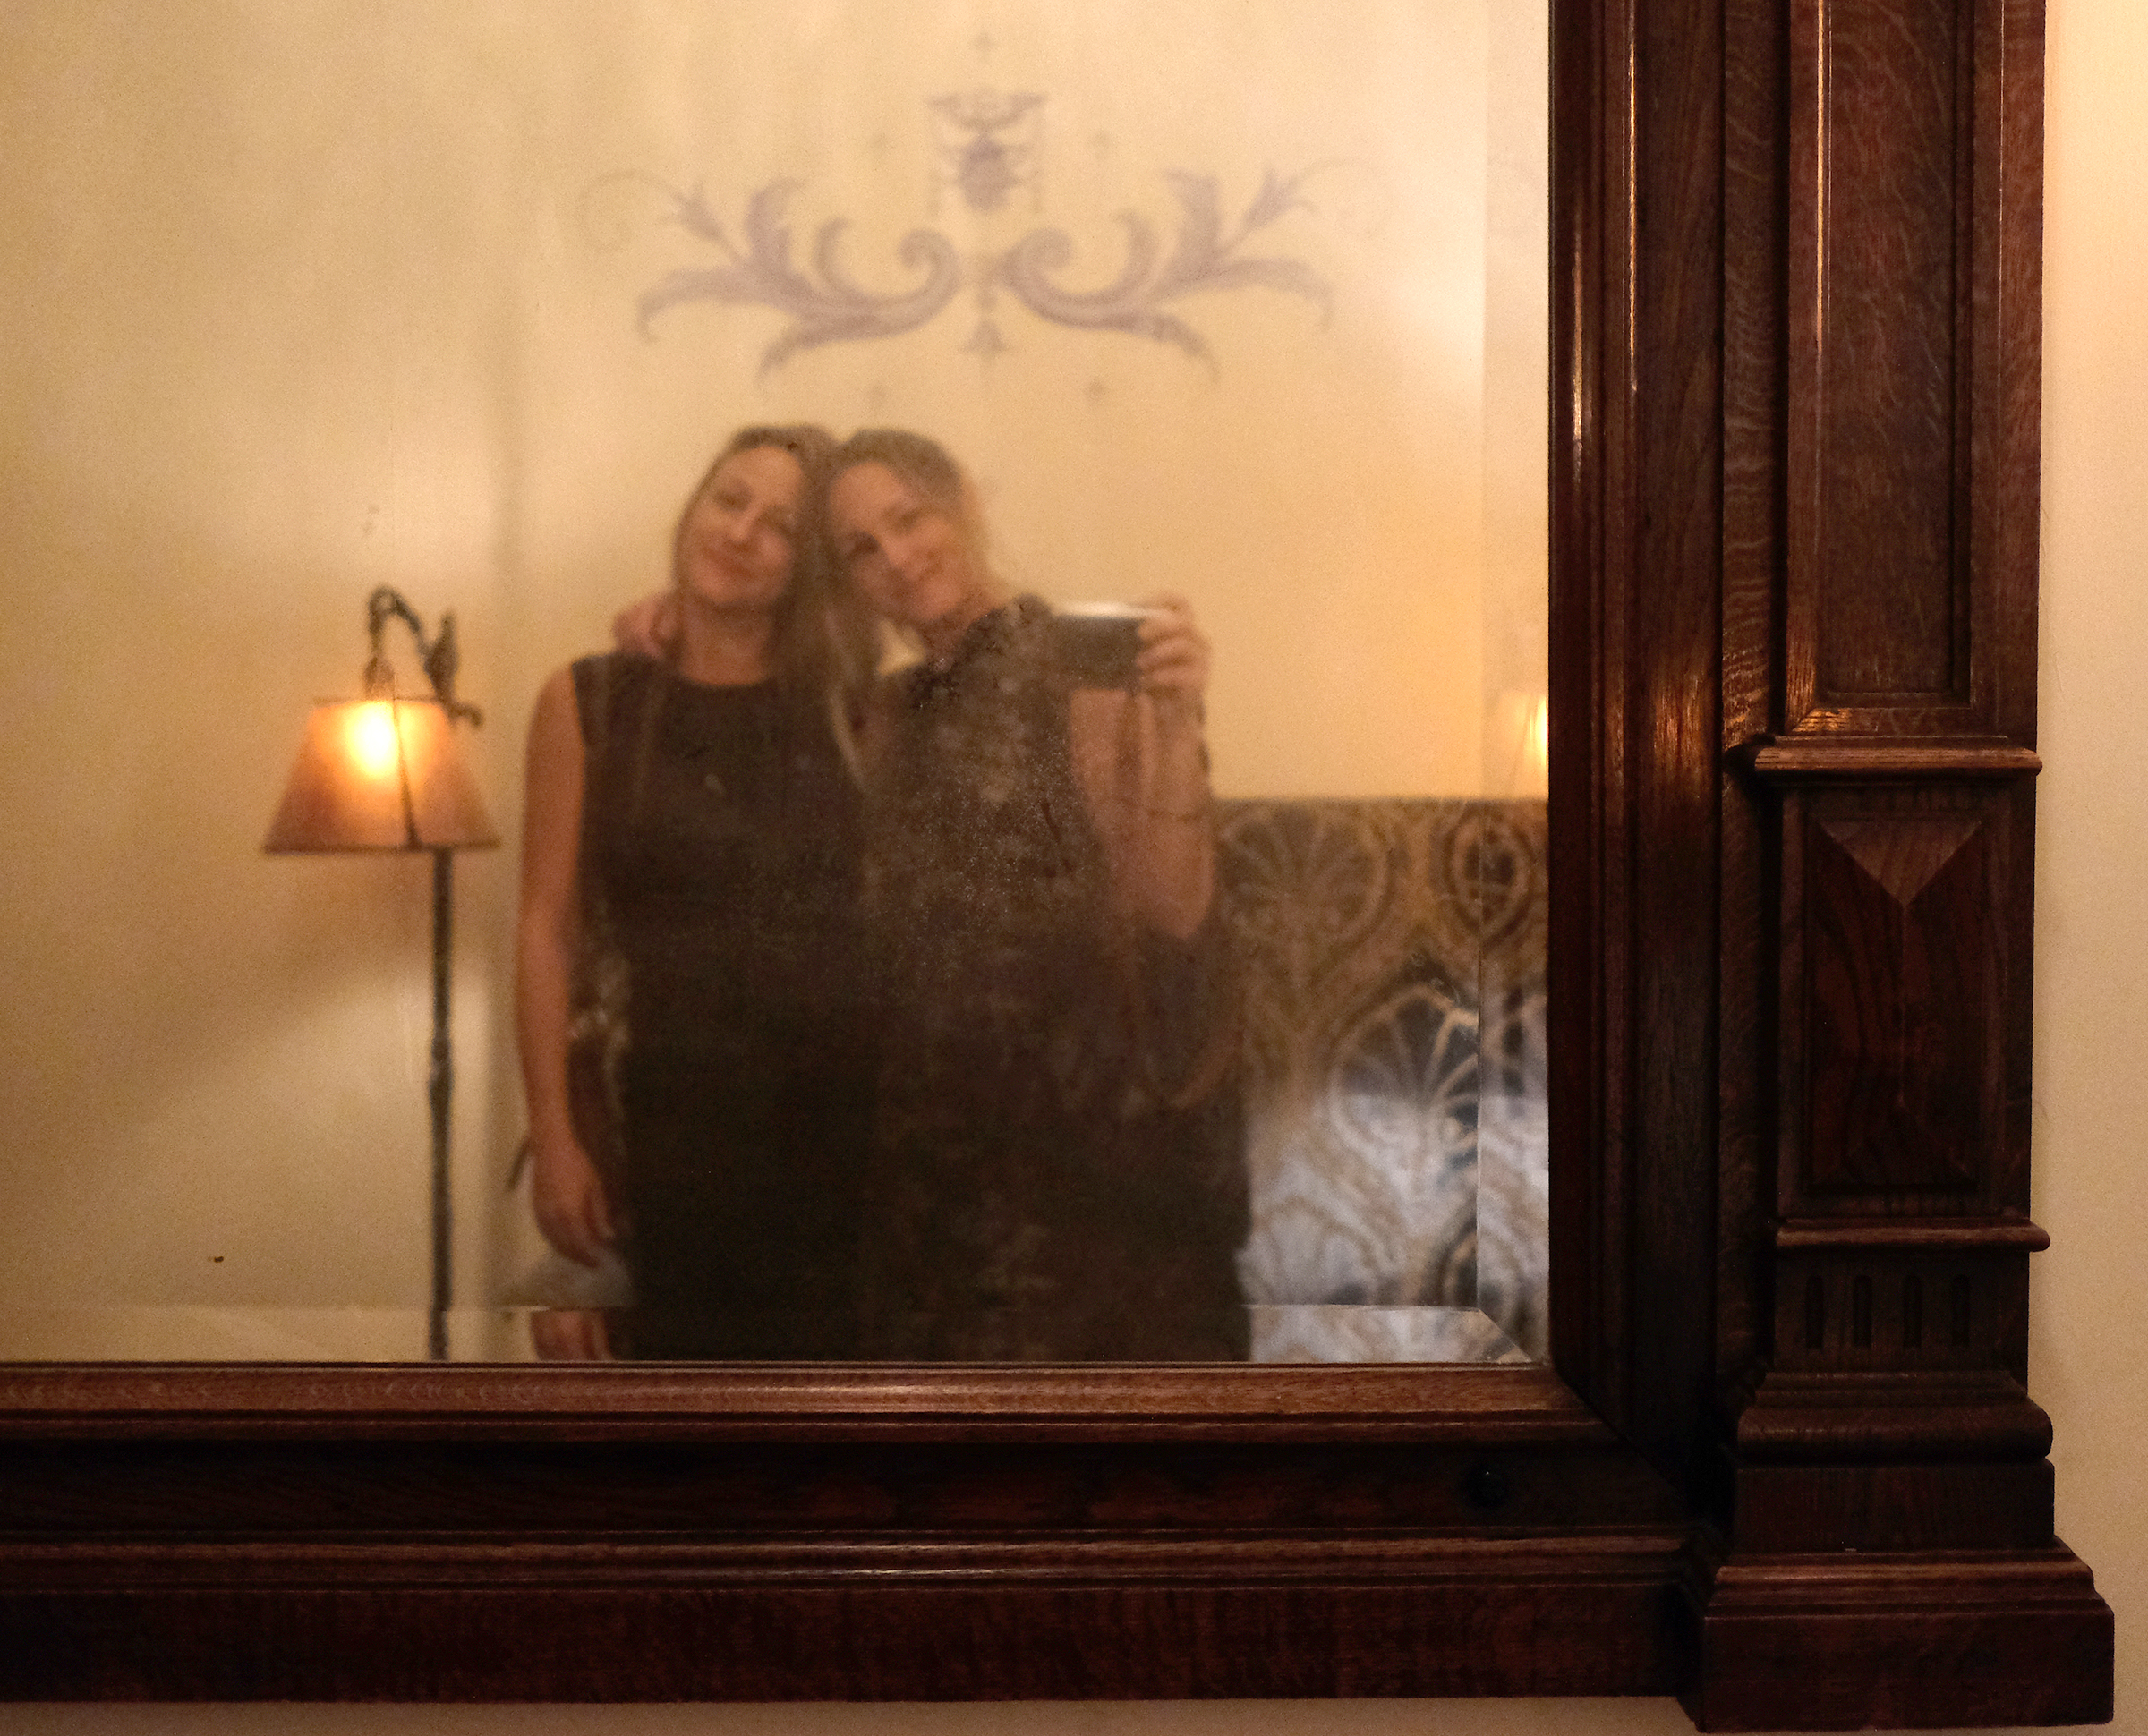 Becca and me in the Chateau Marmont lobby